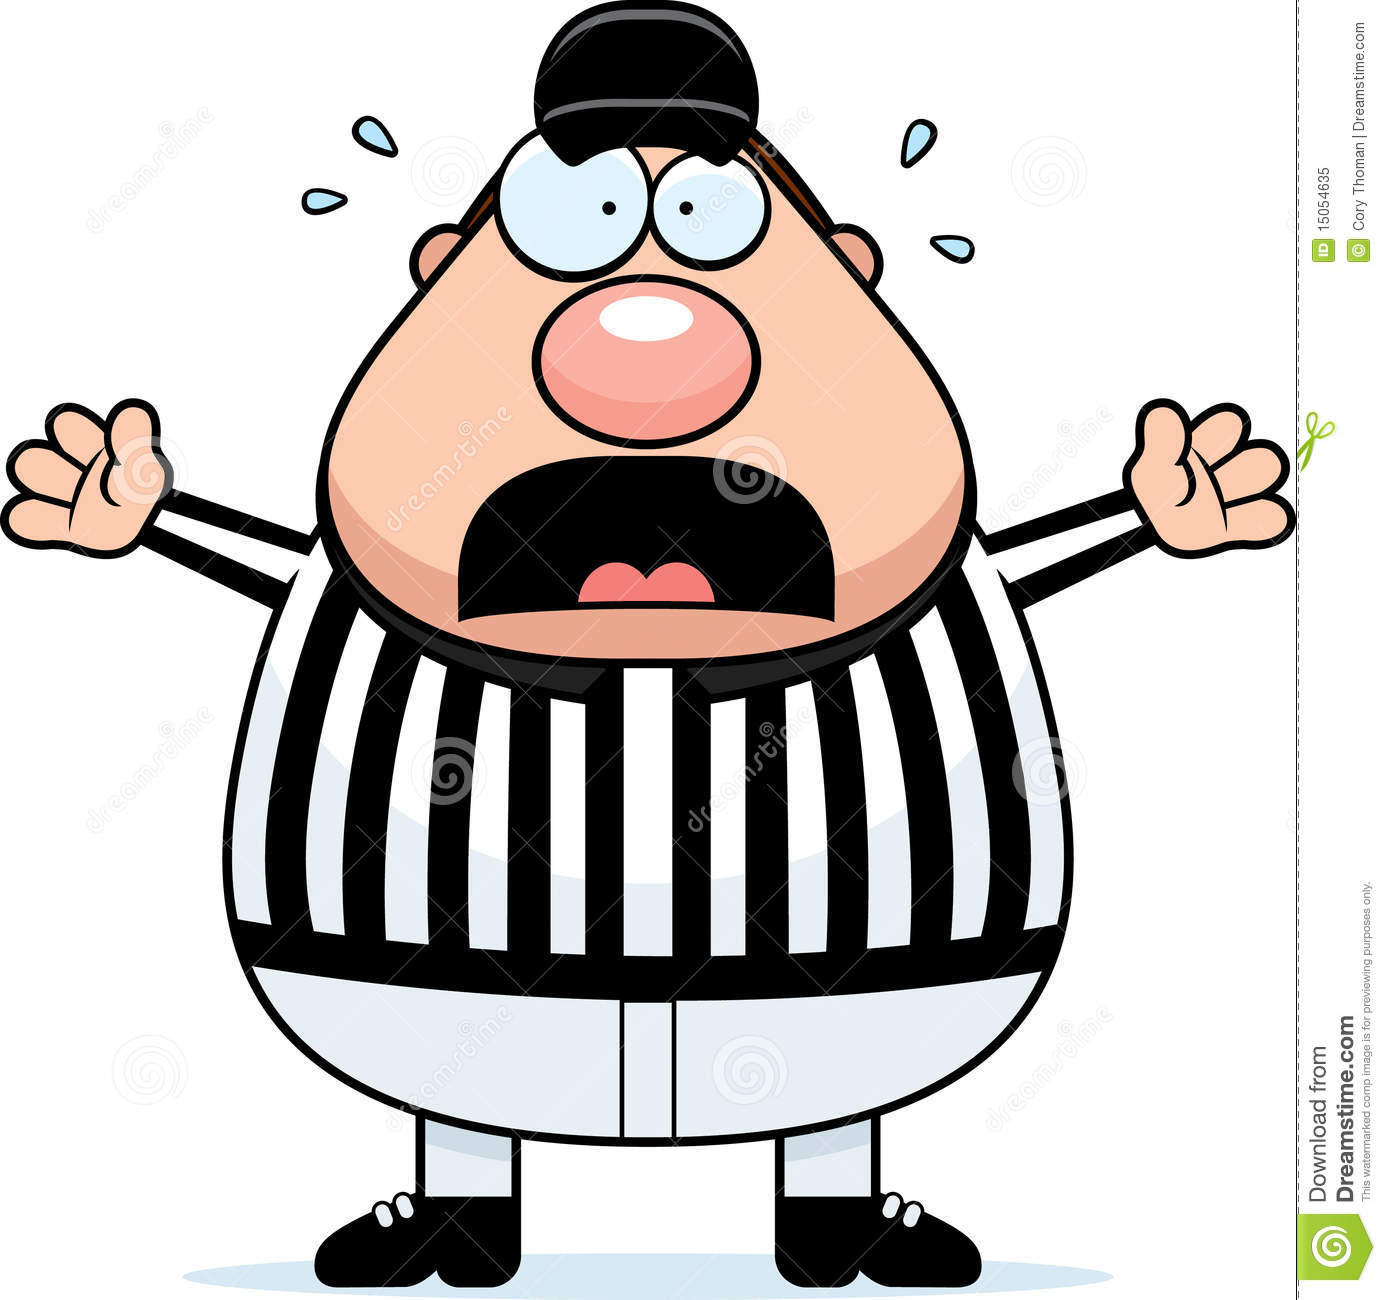 Scared Referee Royalty Free Stock Photo